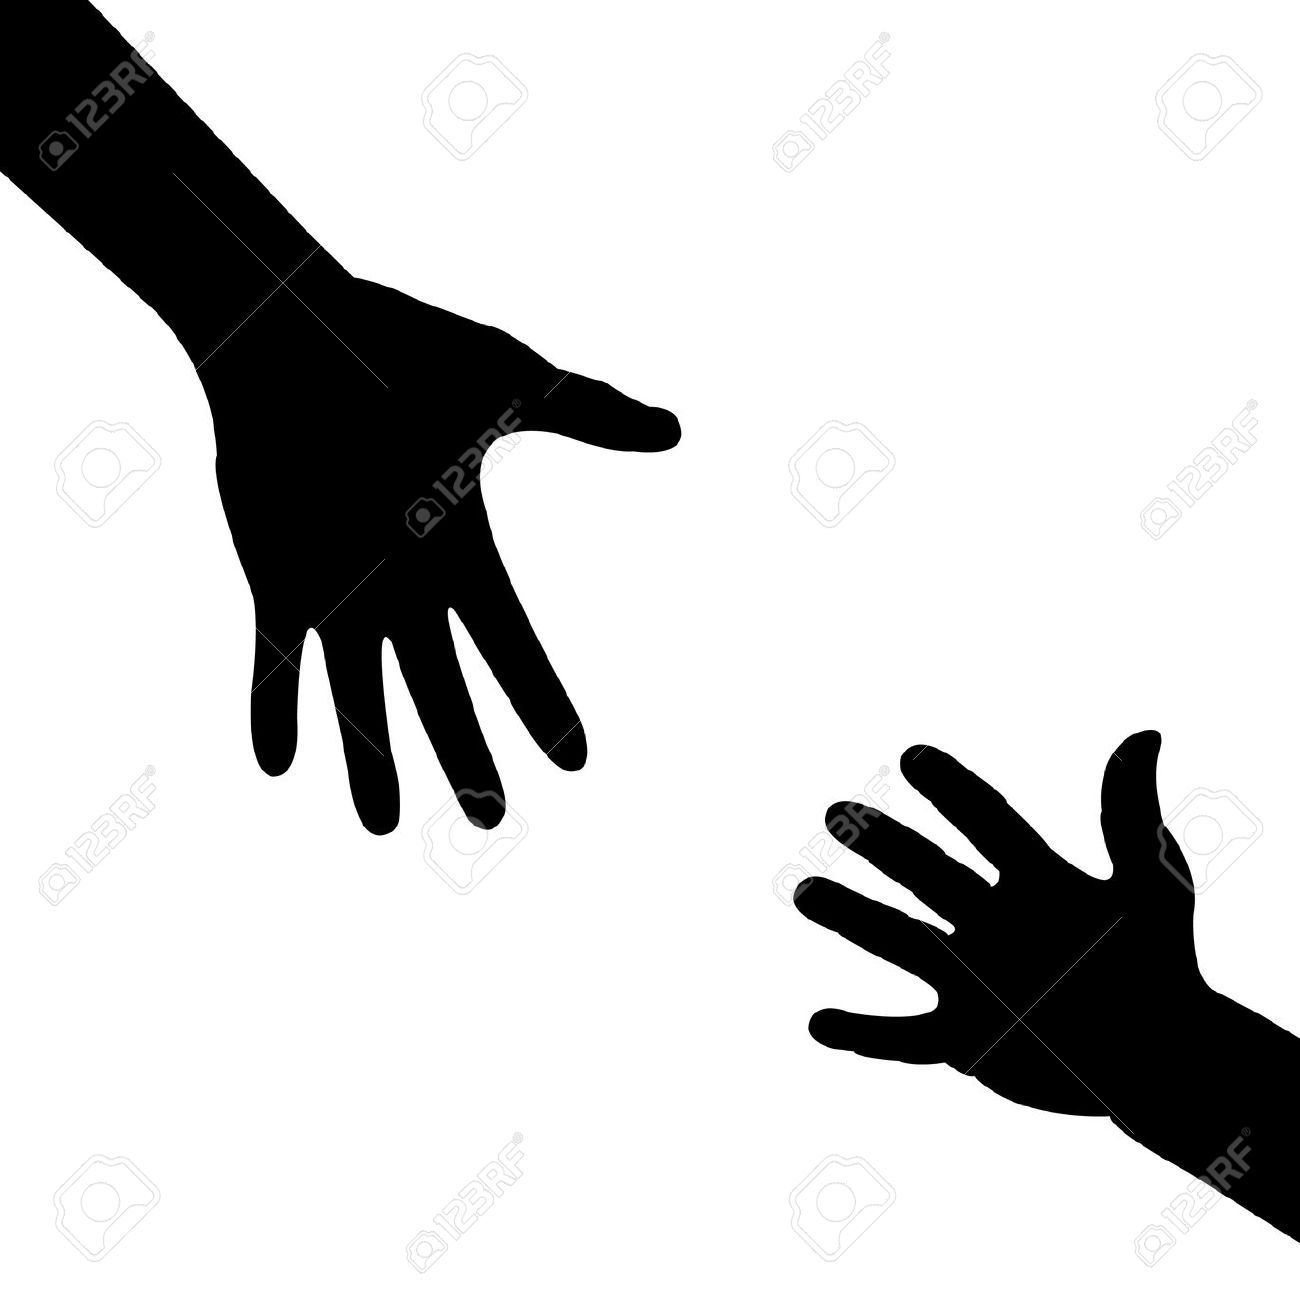 Clipart reaching hands clipart black and white Reaching hands clipart » Clipart Portal clipart black and white